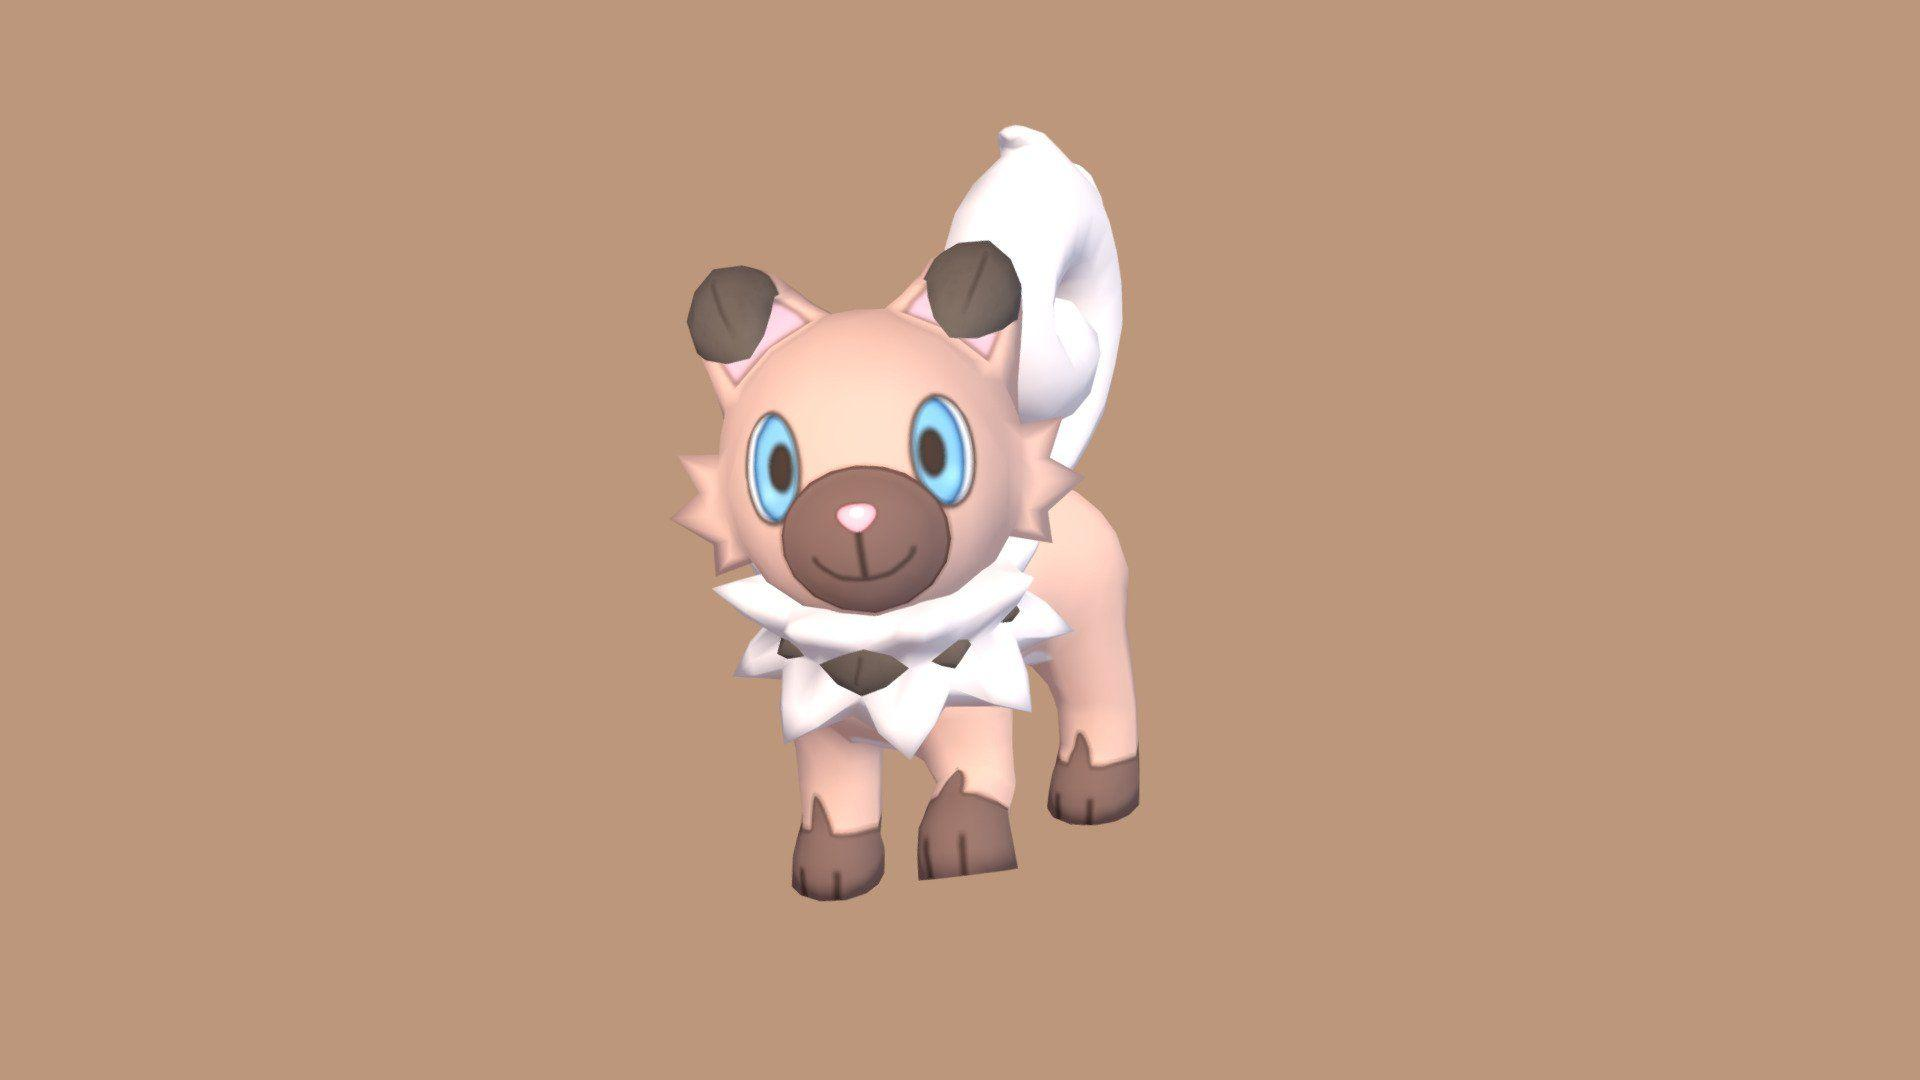 Rockruff (Pokemon Sun & Moon) - 3D model by SGRM (@SGRM) - Sketchfab